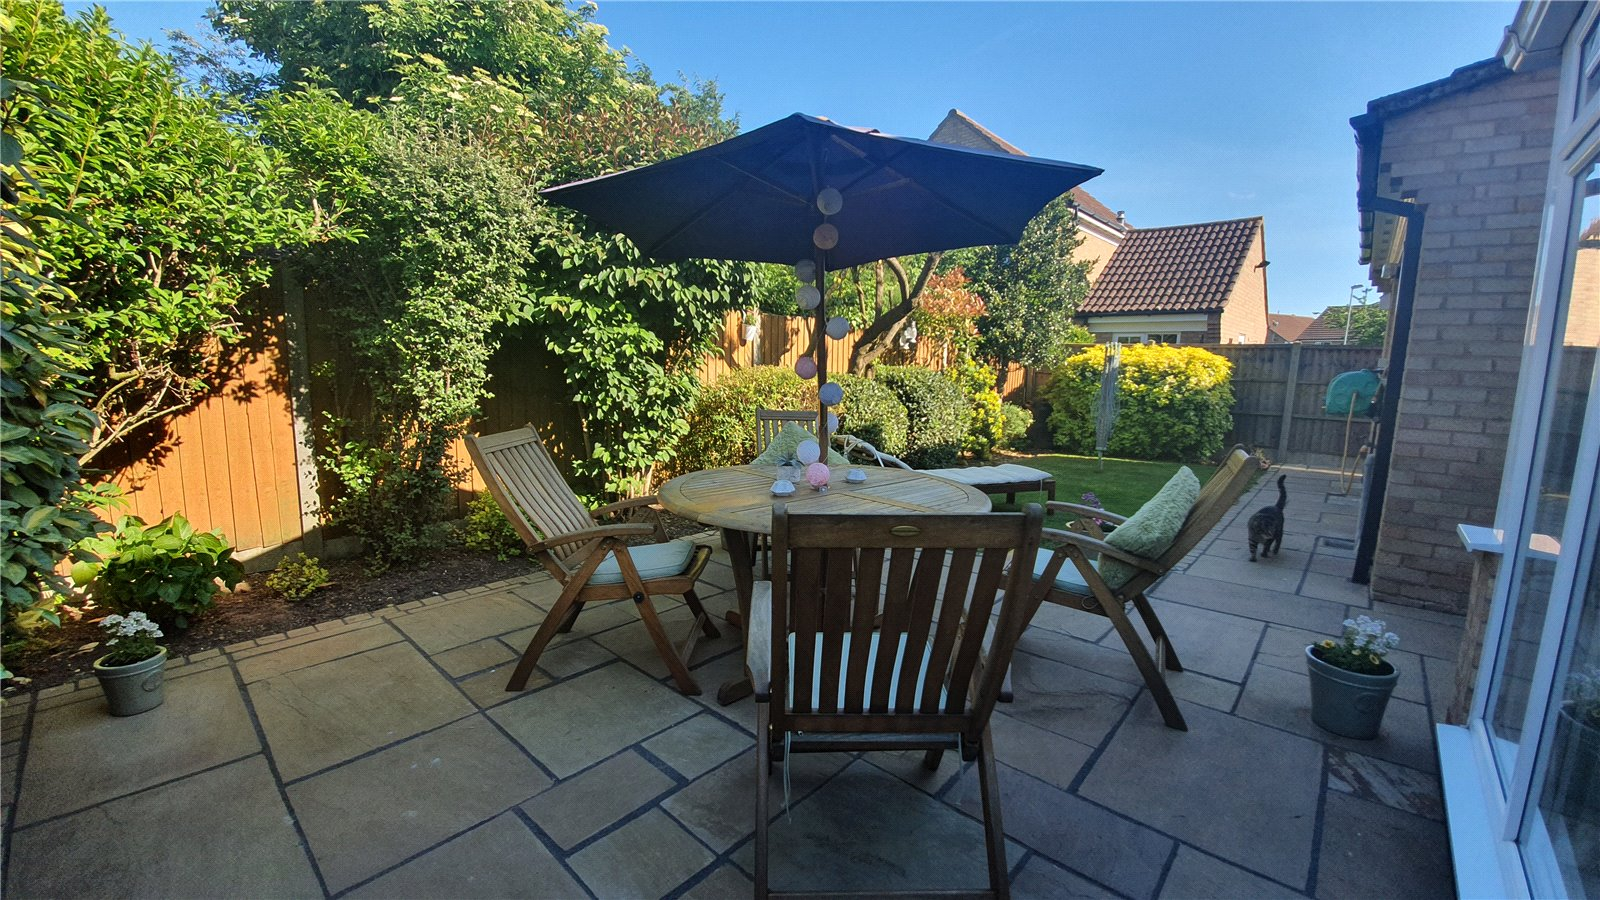 3 bed house for sale in Axis Way, Eaton Socon 3